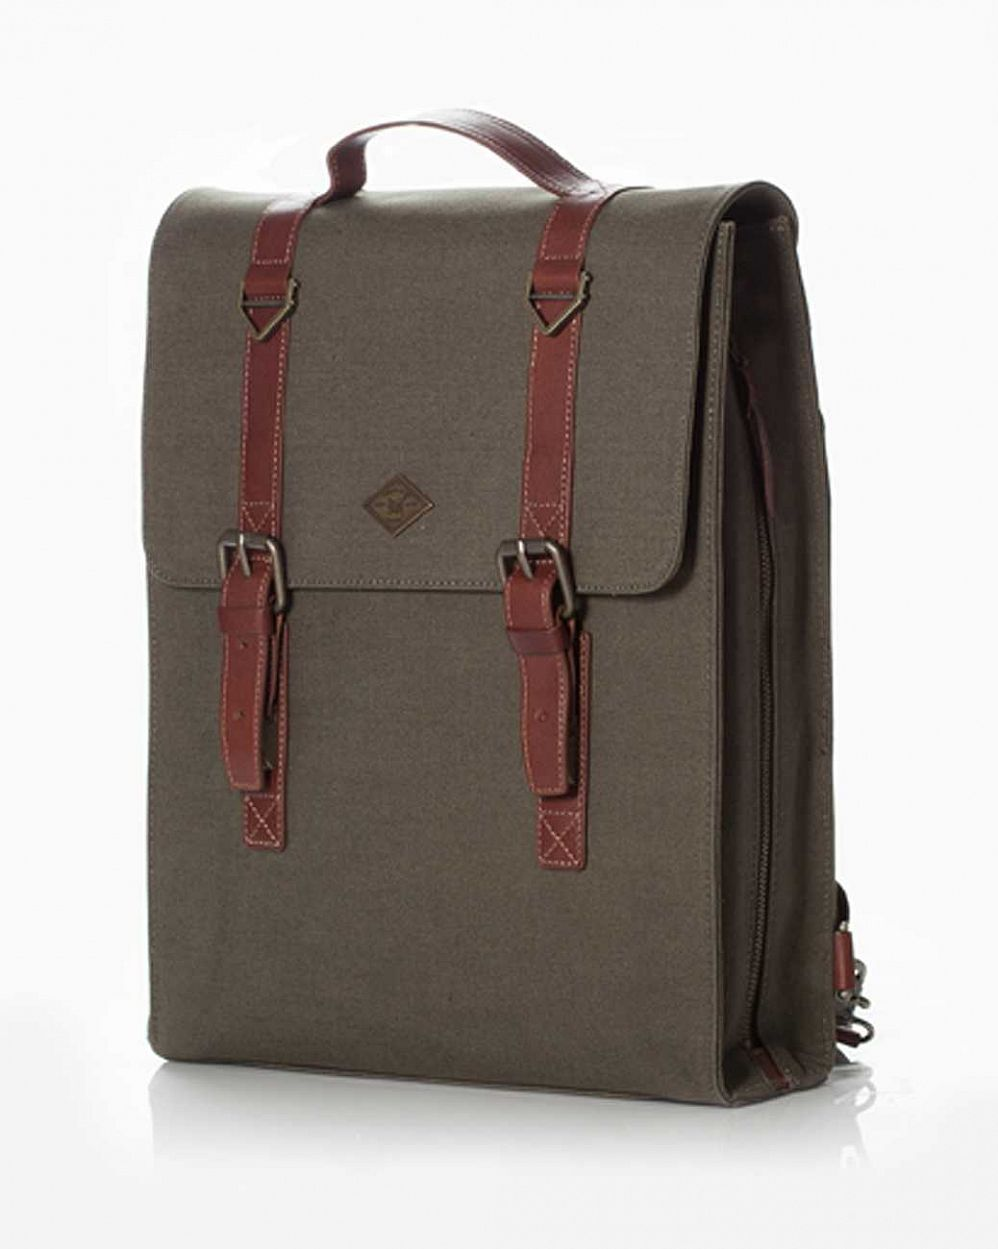 Рюкзак Brownbreath Backpack Artisan 3way GU - Khaki отзывы